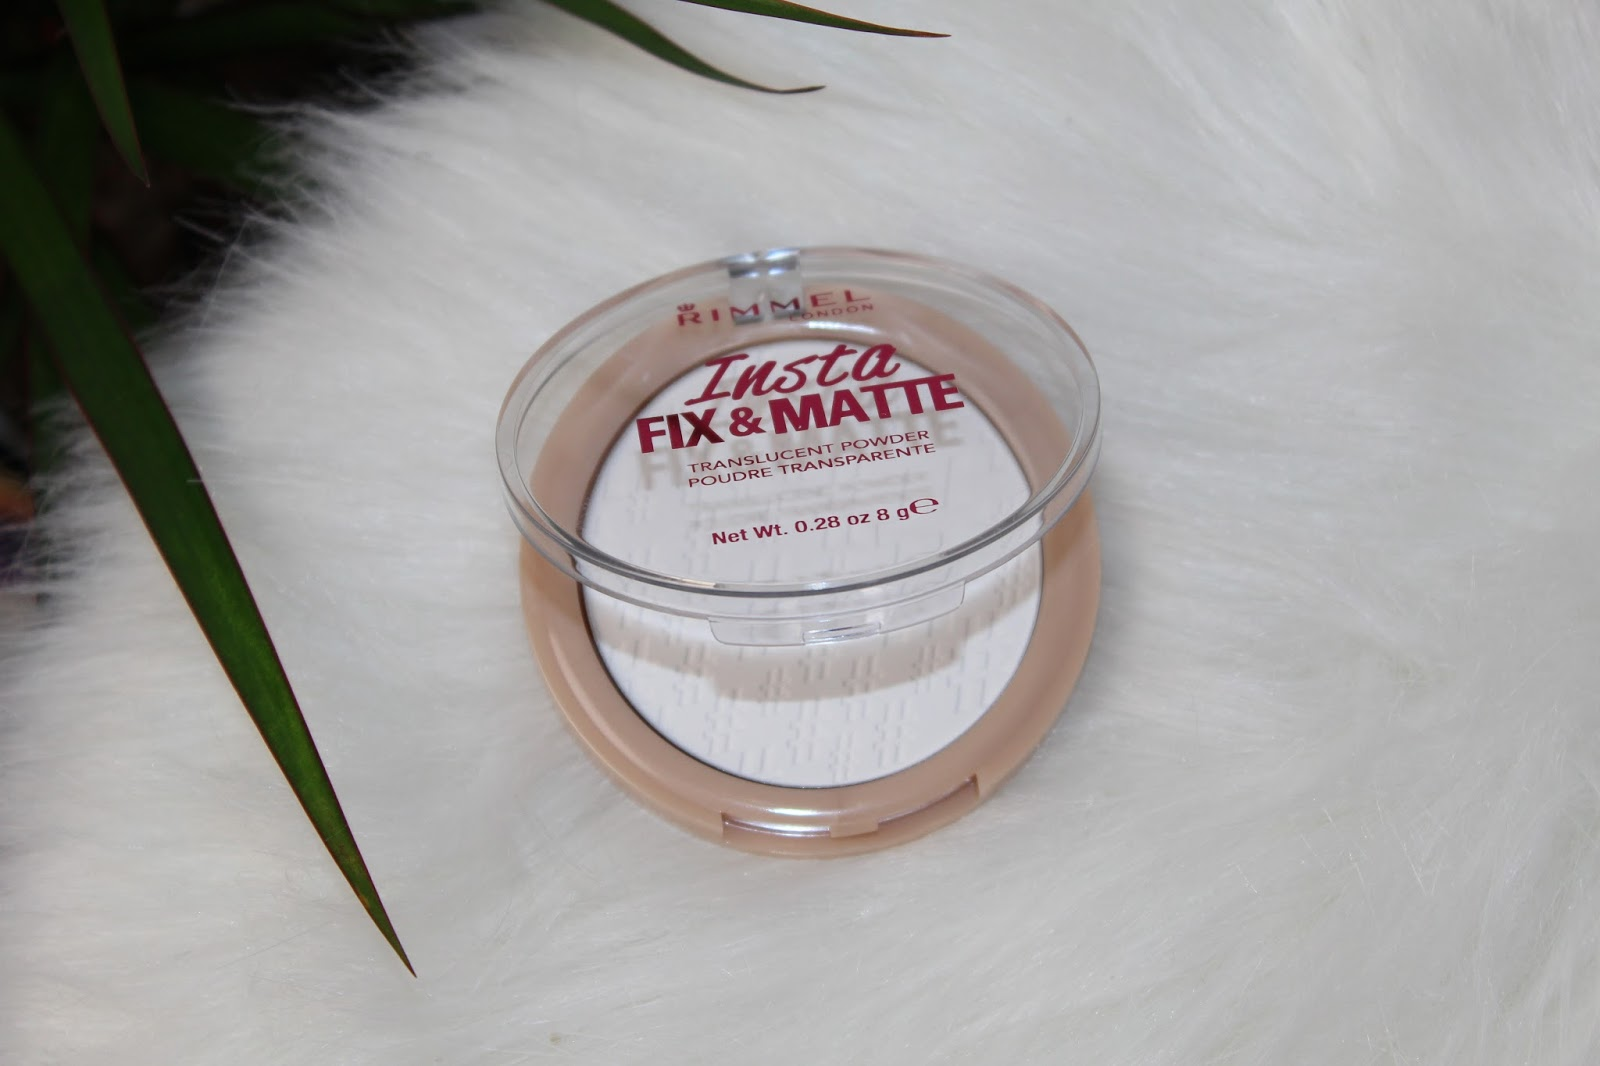 gold2.h-paradise.net Price The Insta Fix & Go Powder retails for £4.99 for 8g of product whereas  the Stay Matte Powder retails for £3.99 for 14g of product.